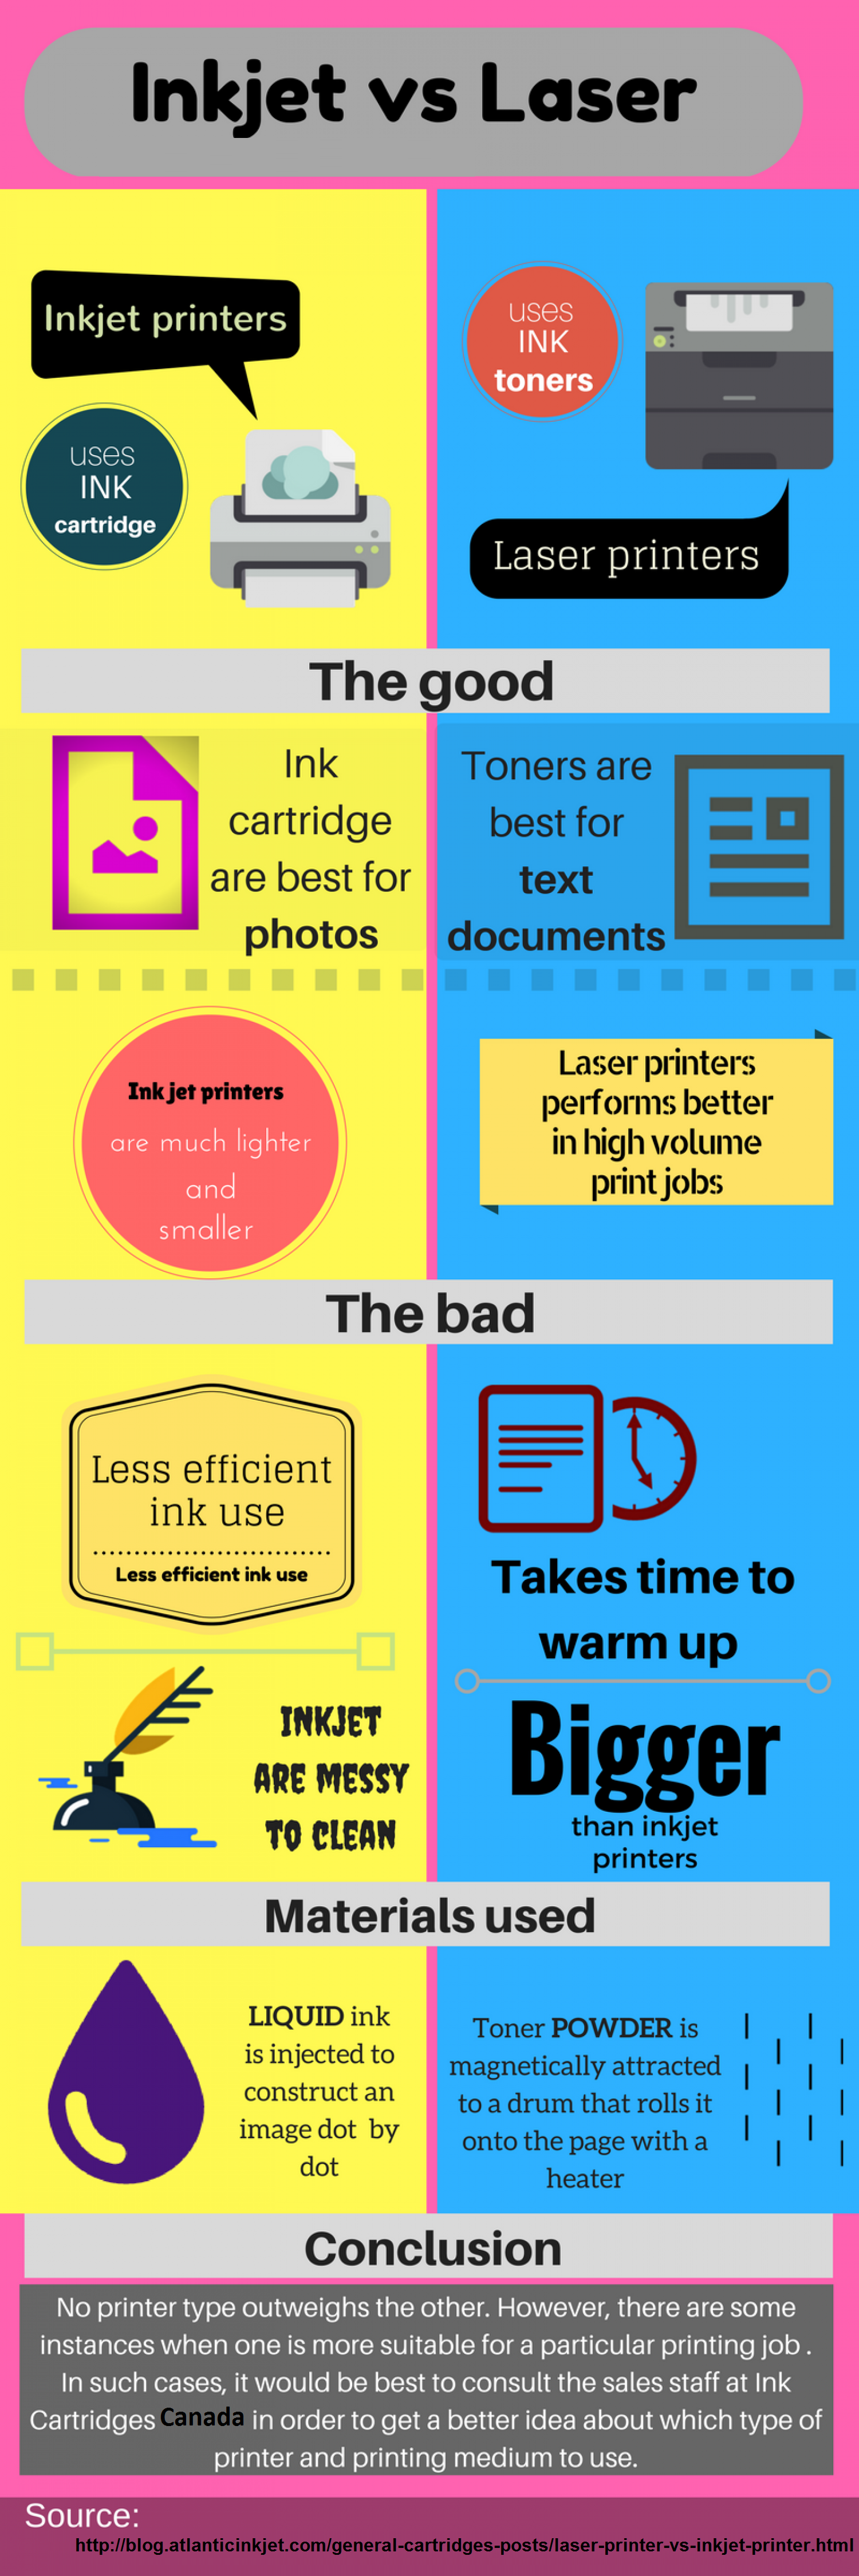 Pin by Reviews Simple on Infographic | Cheap printer ink, Printer